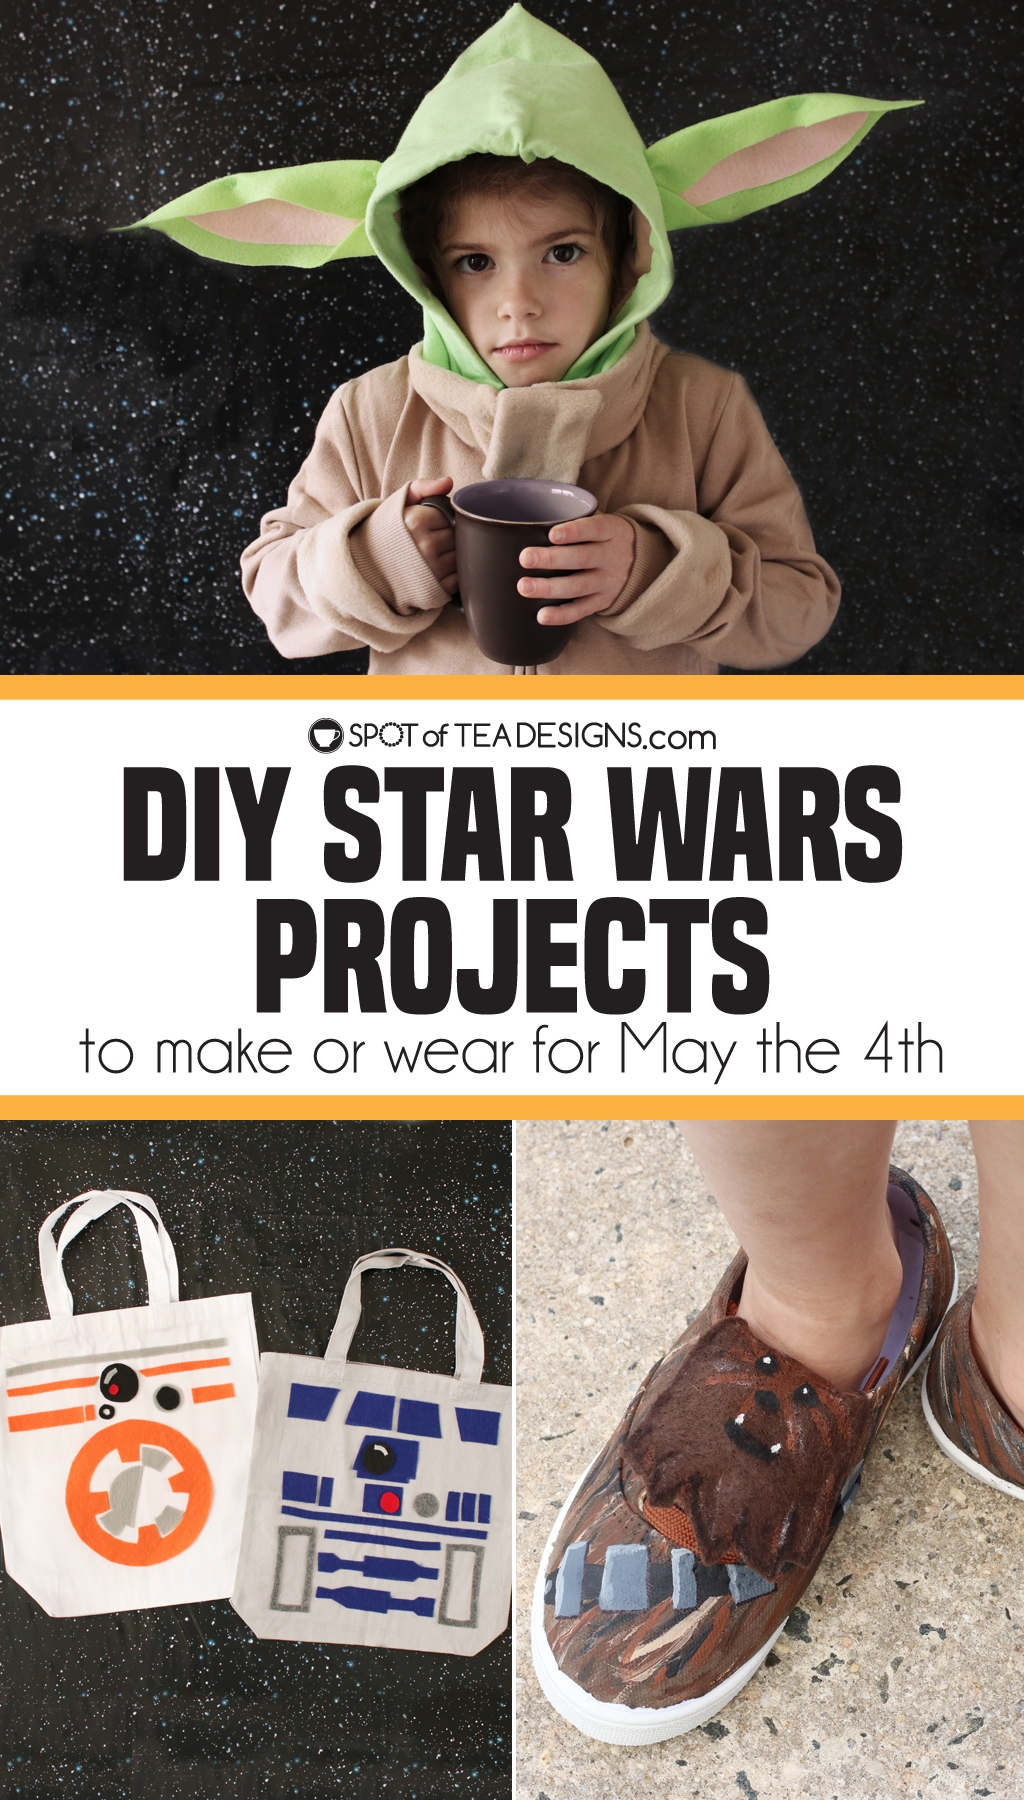 DIY Star Wars Projects to make for May the 4th | spotofteadesigns.com